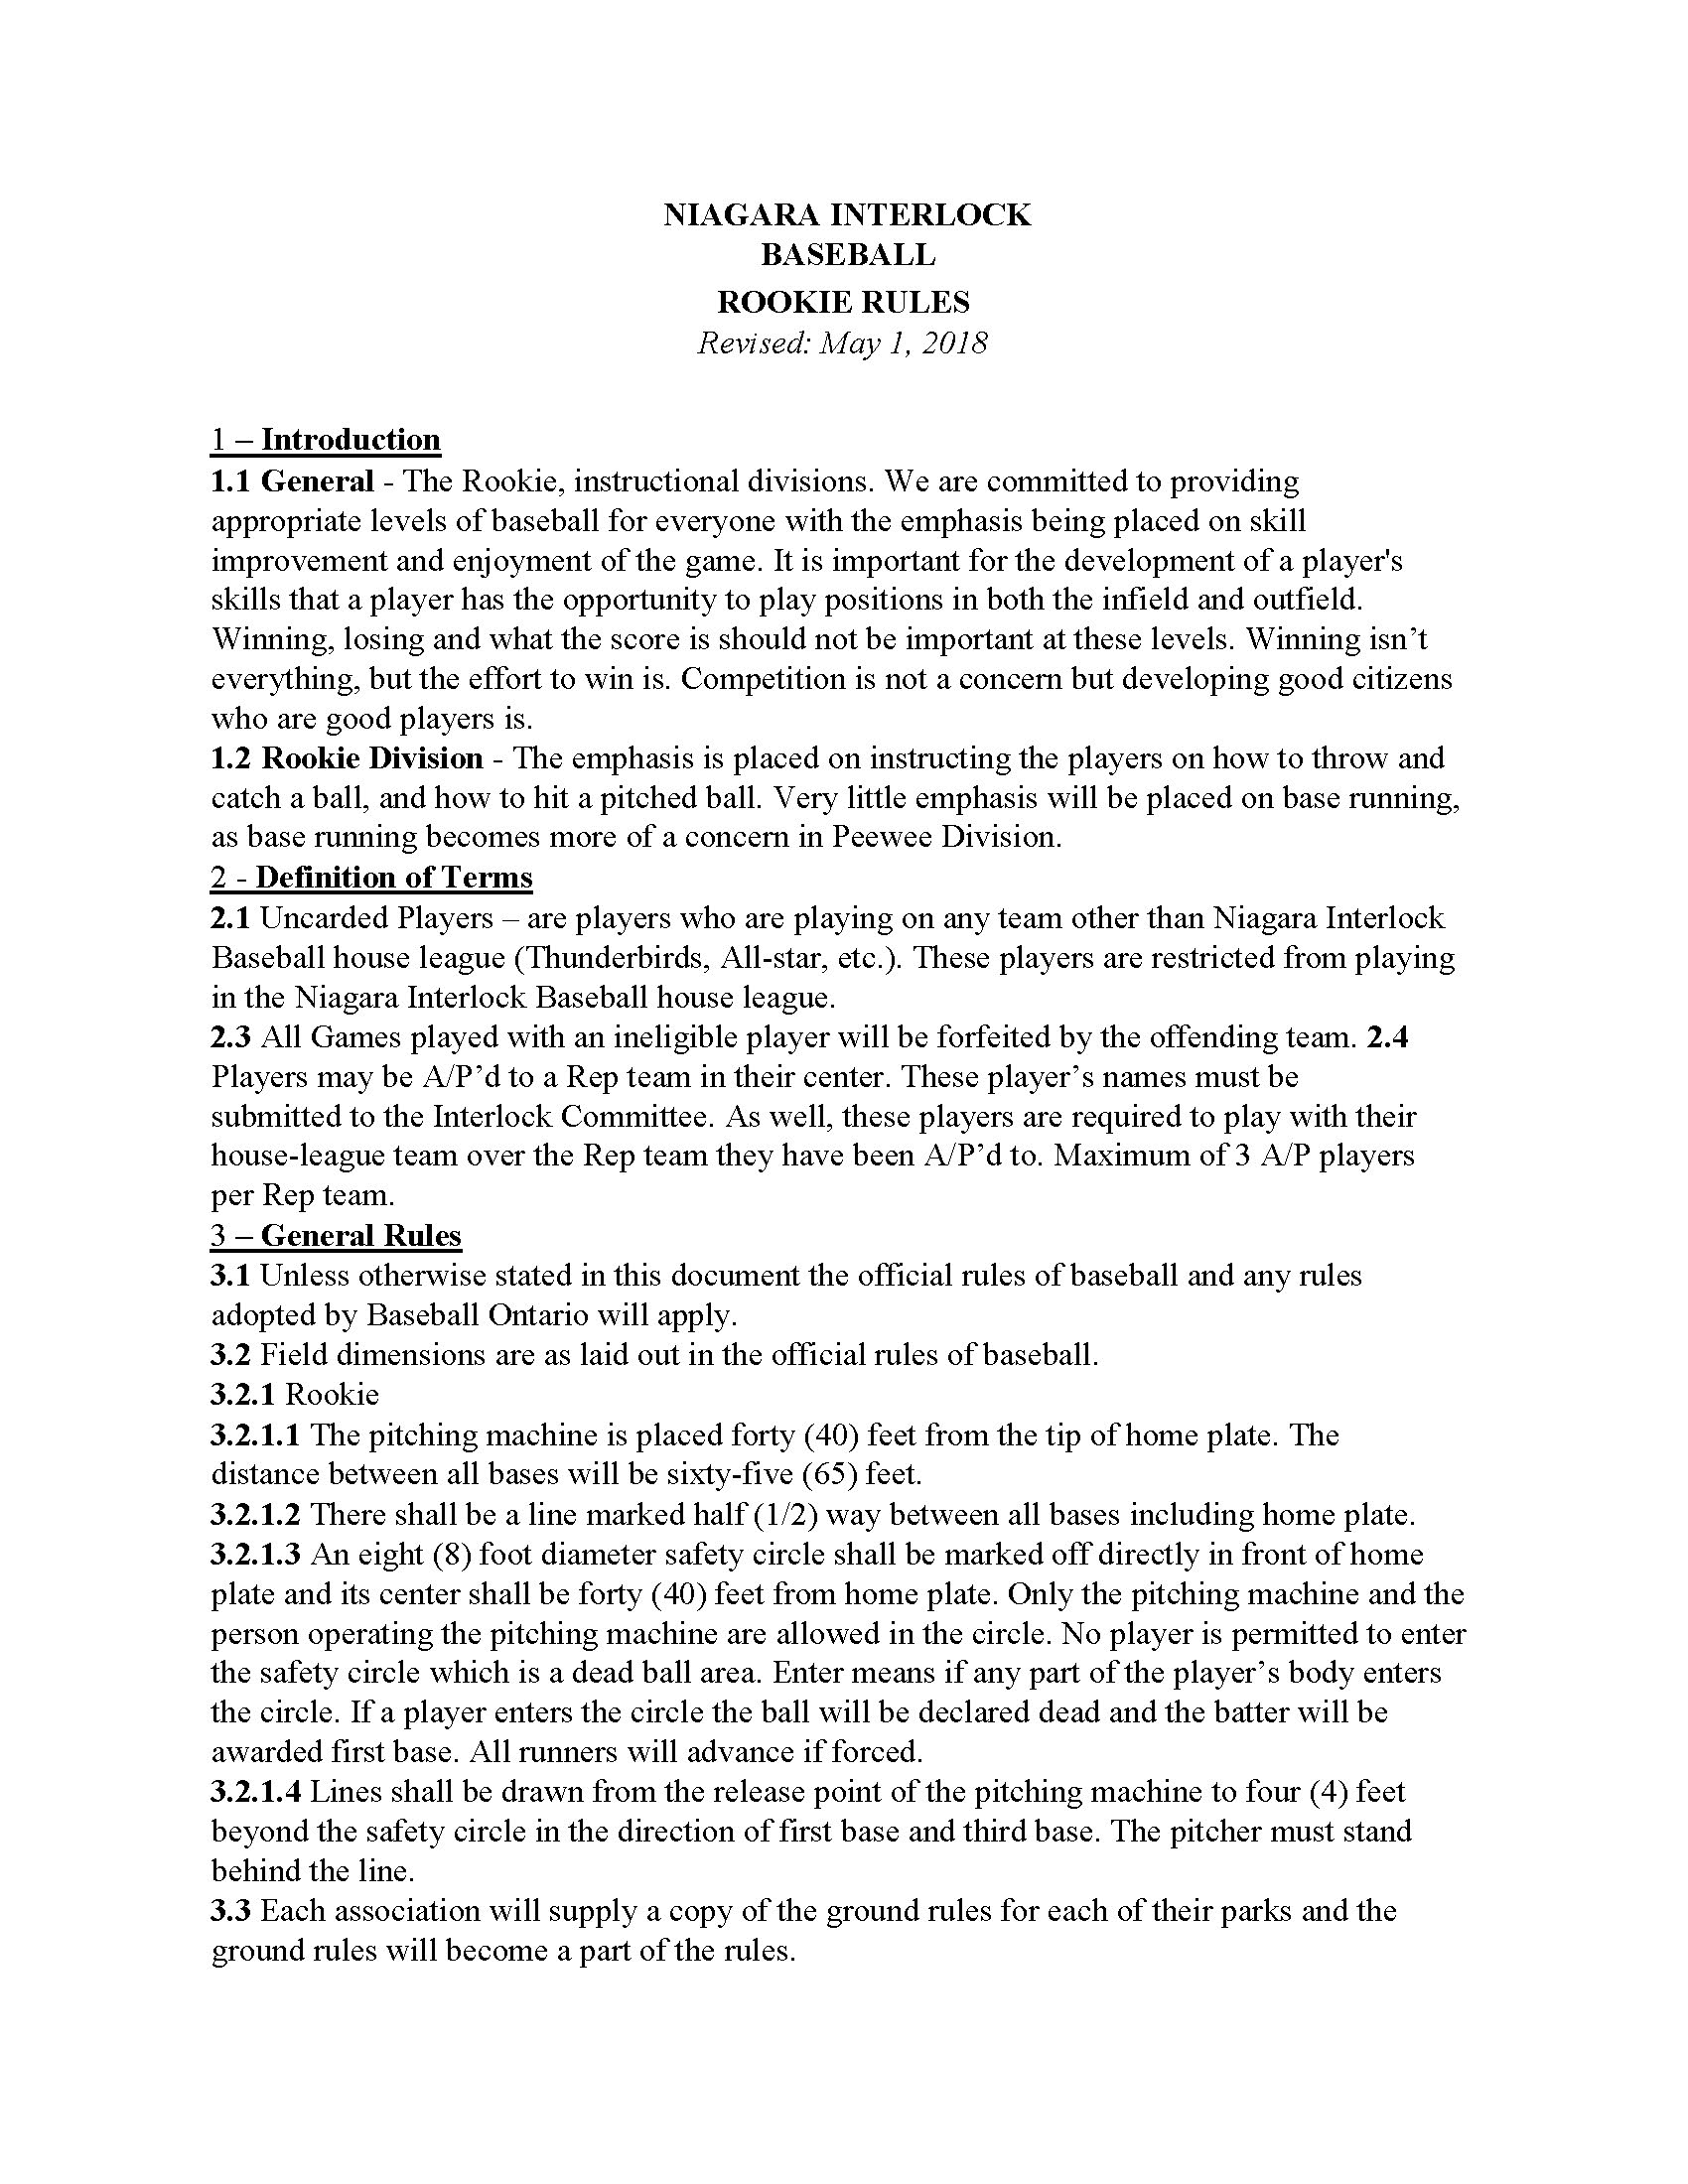 Sr. Rookie Rules 1